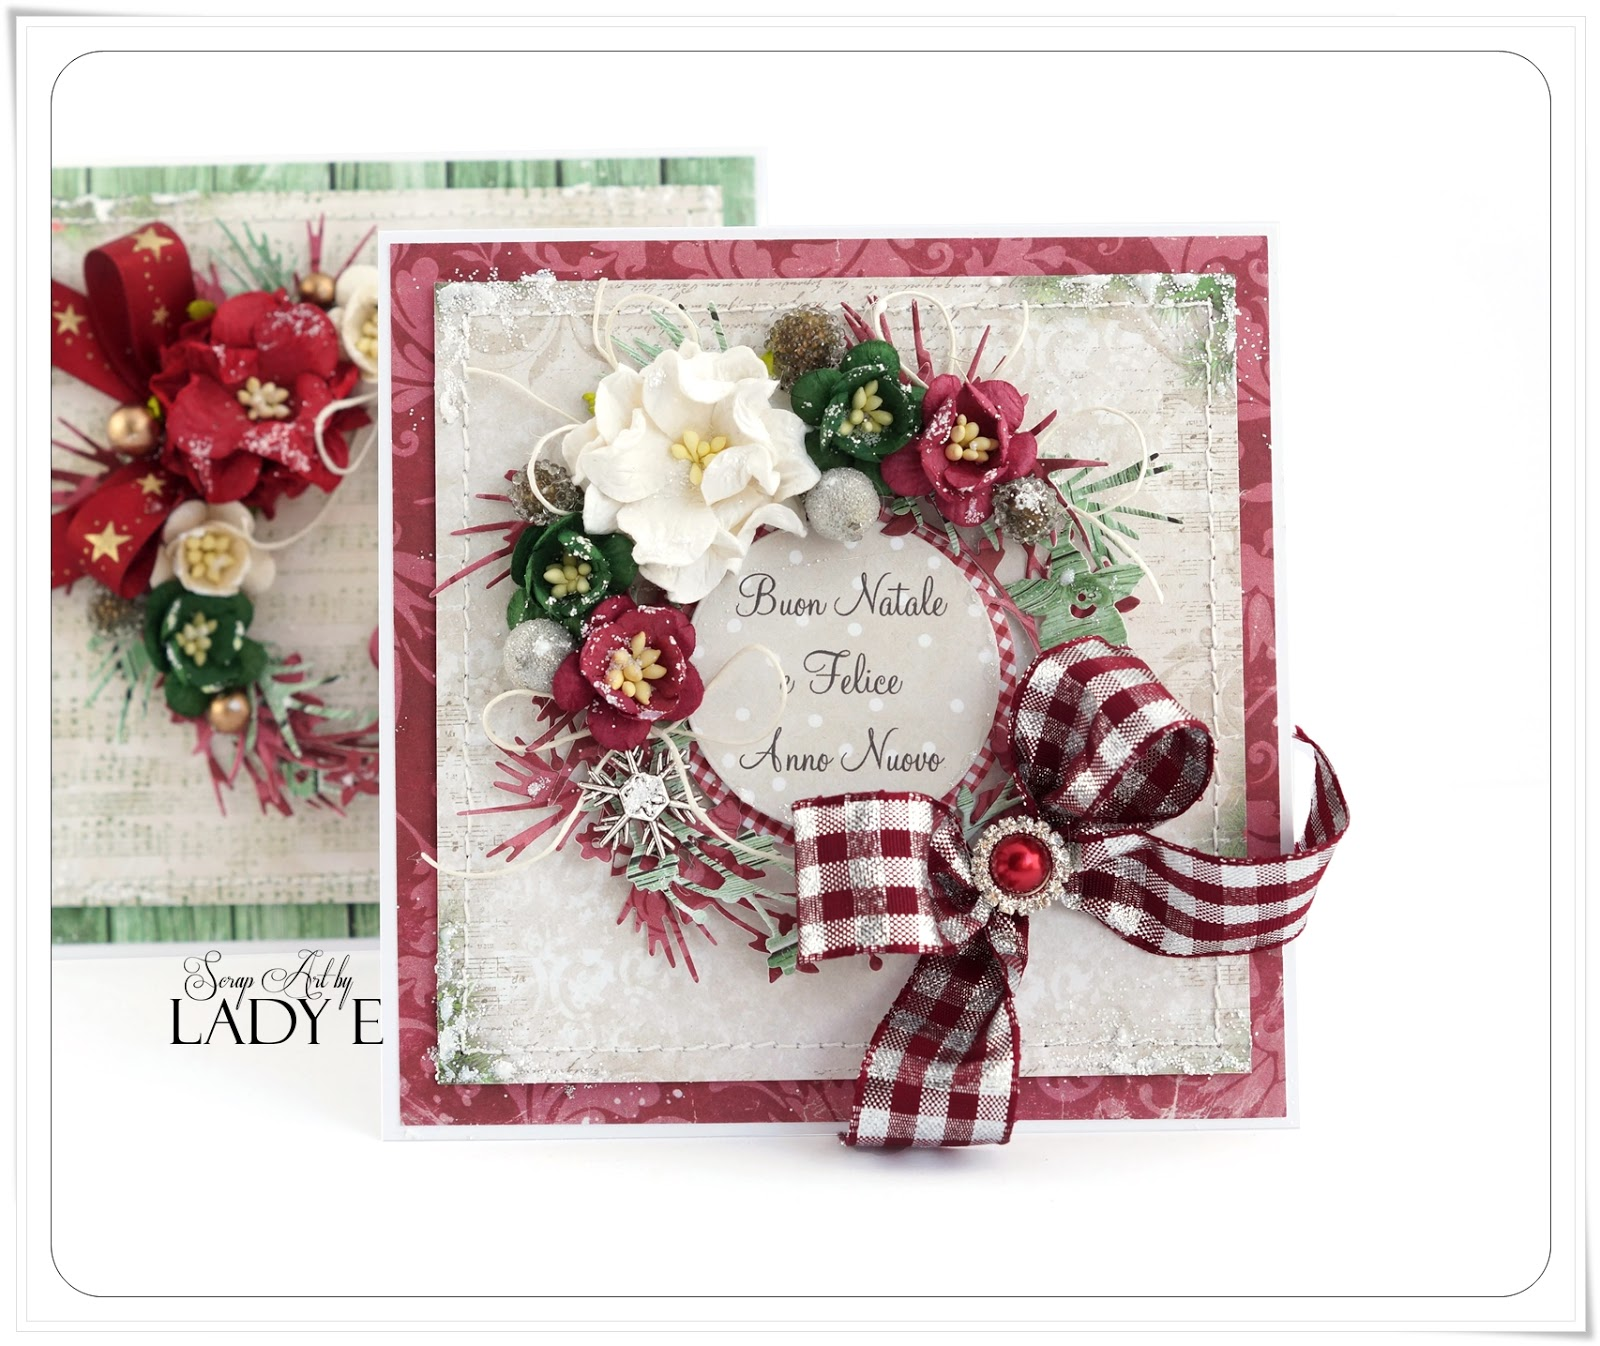 Wild Orchid Crafts 2 Christmas Cards With Wreaths